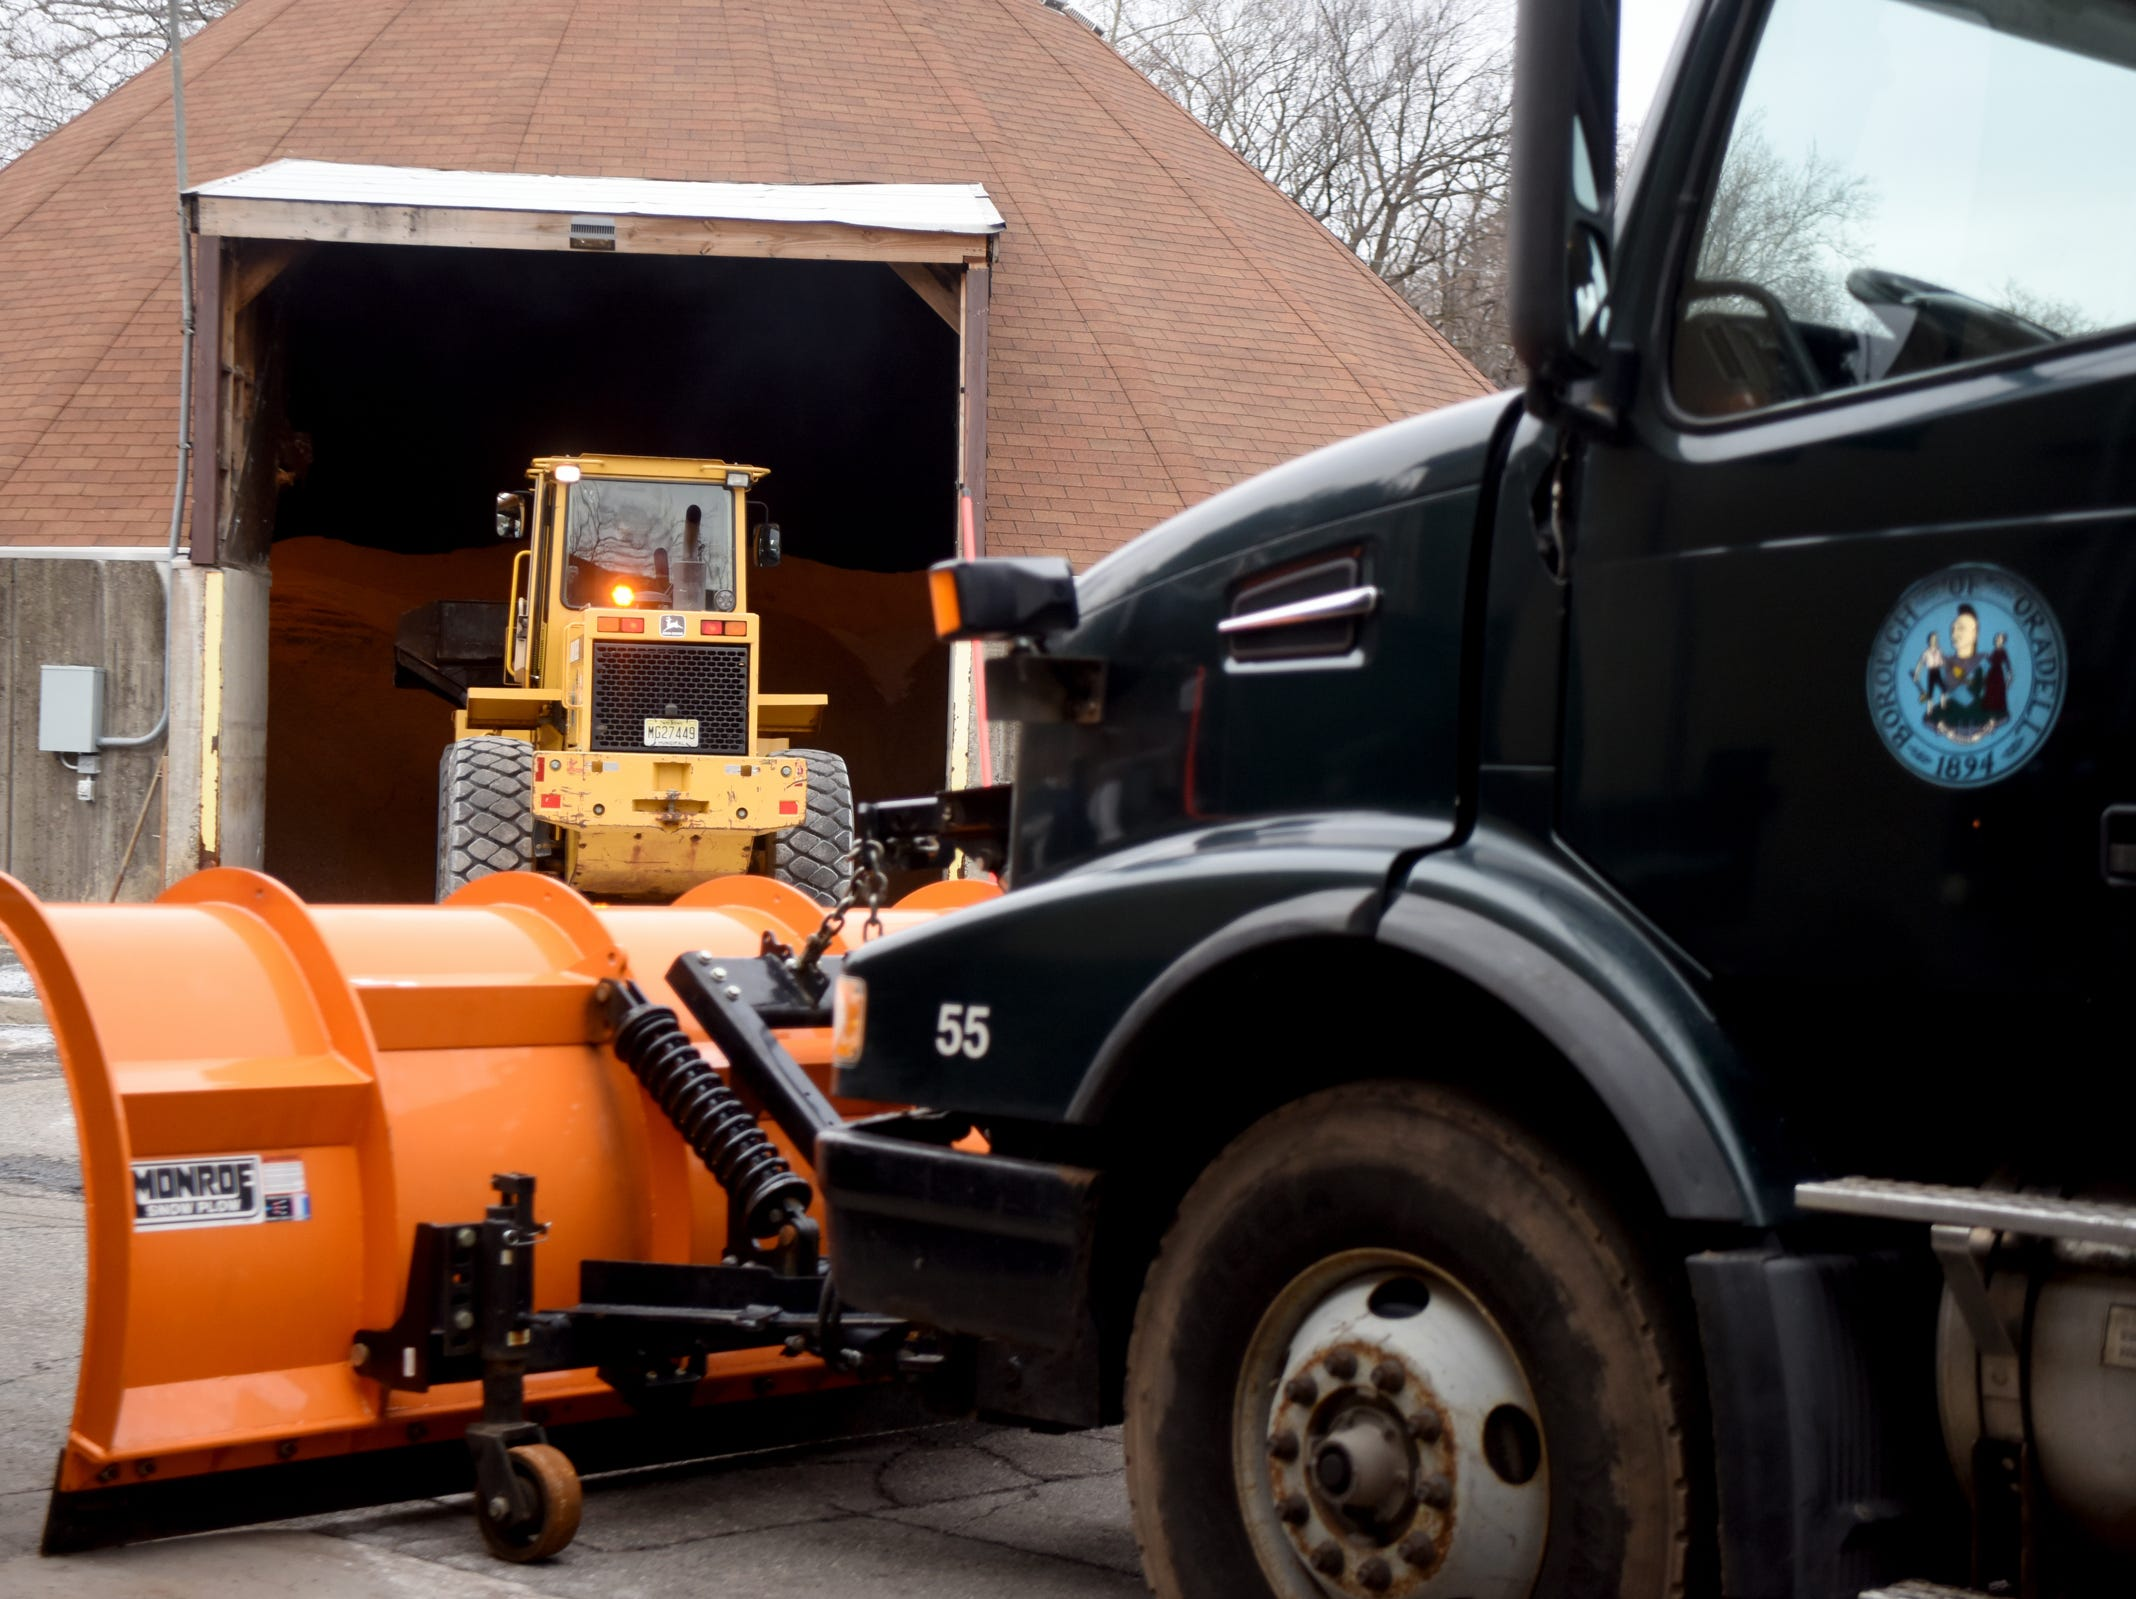 Borough of Oradell Department of Public Works employees fill snow plows with salt on Monday, February 11, 2019 in preparation for a winter storm that could bring snow, ice and freezing rain on Tuesday.